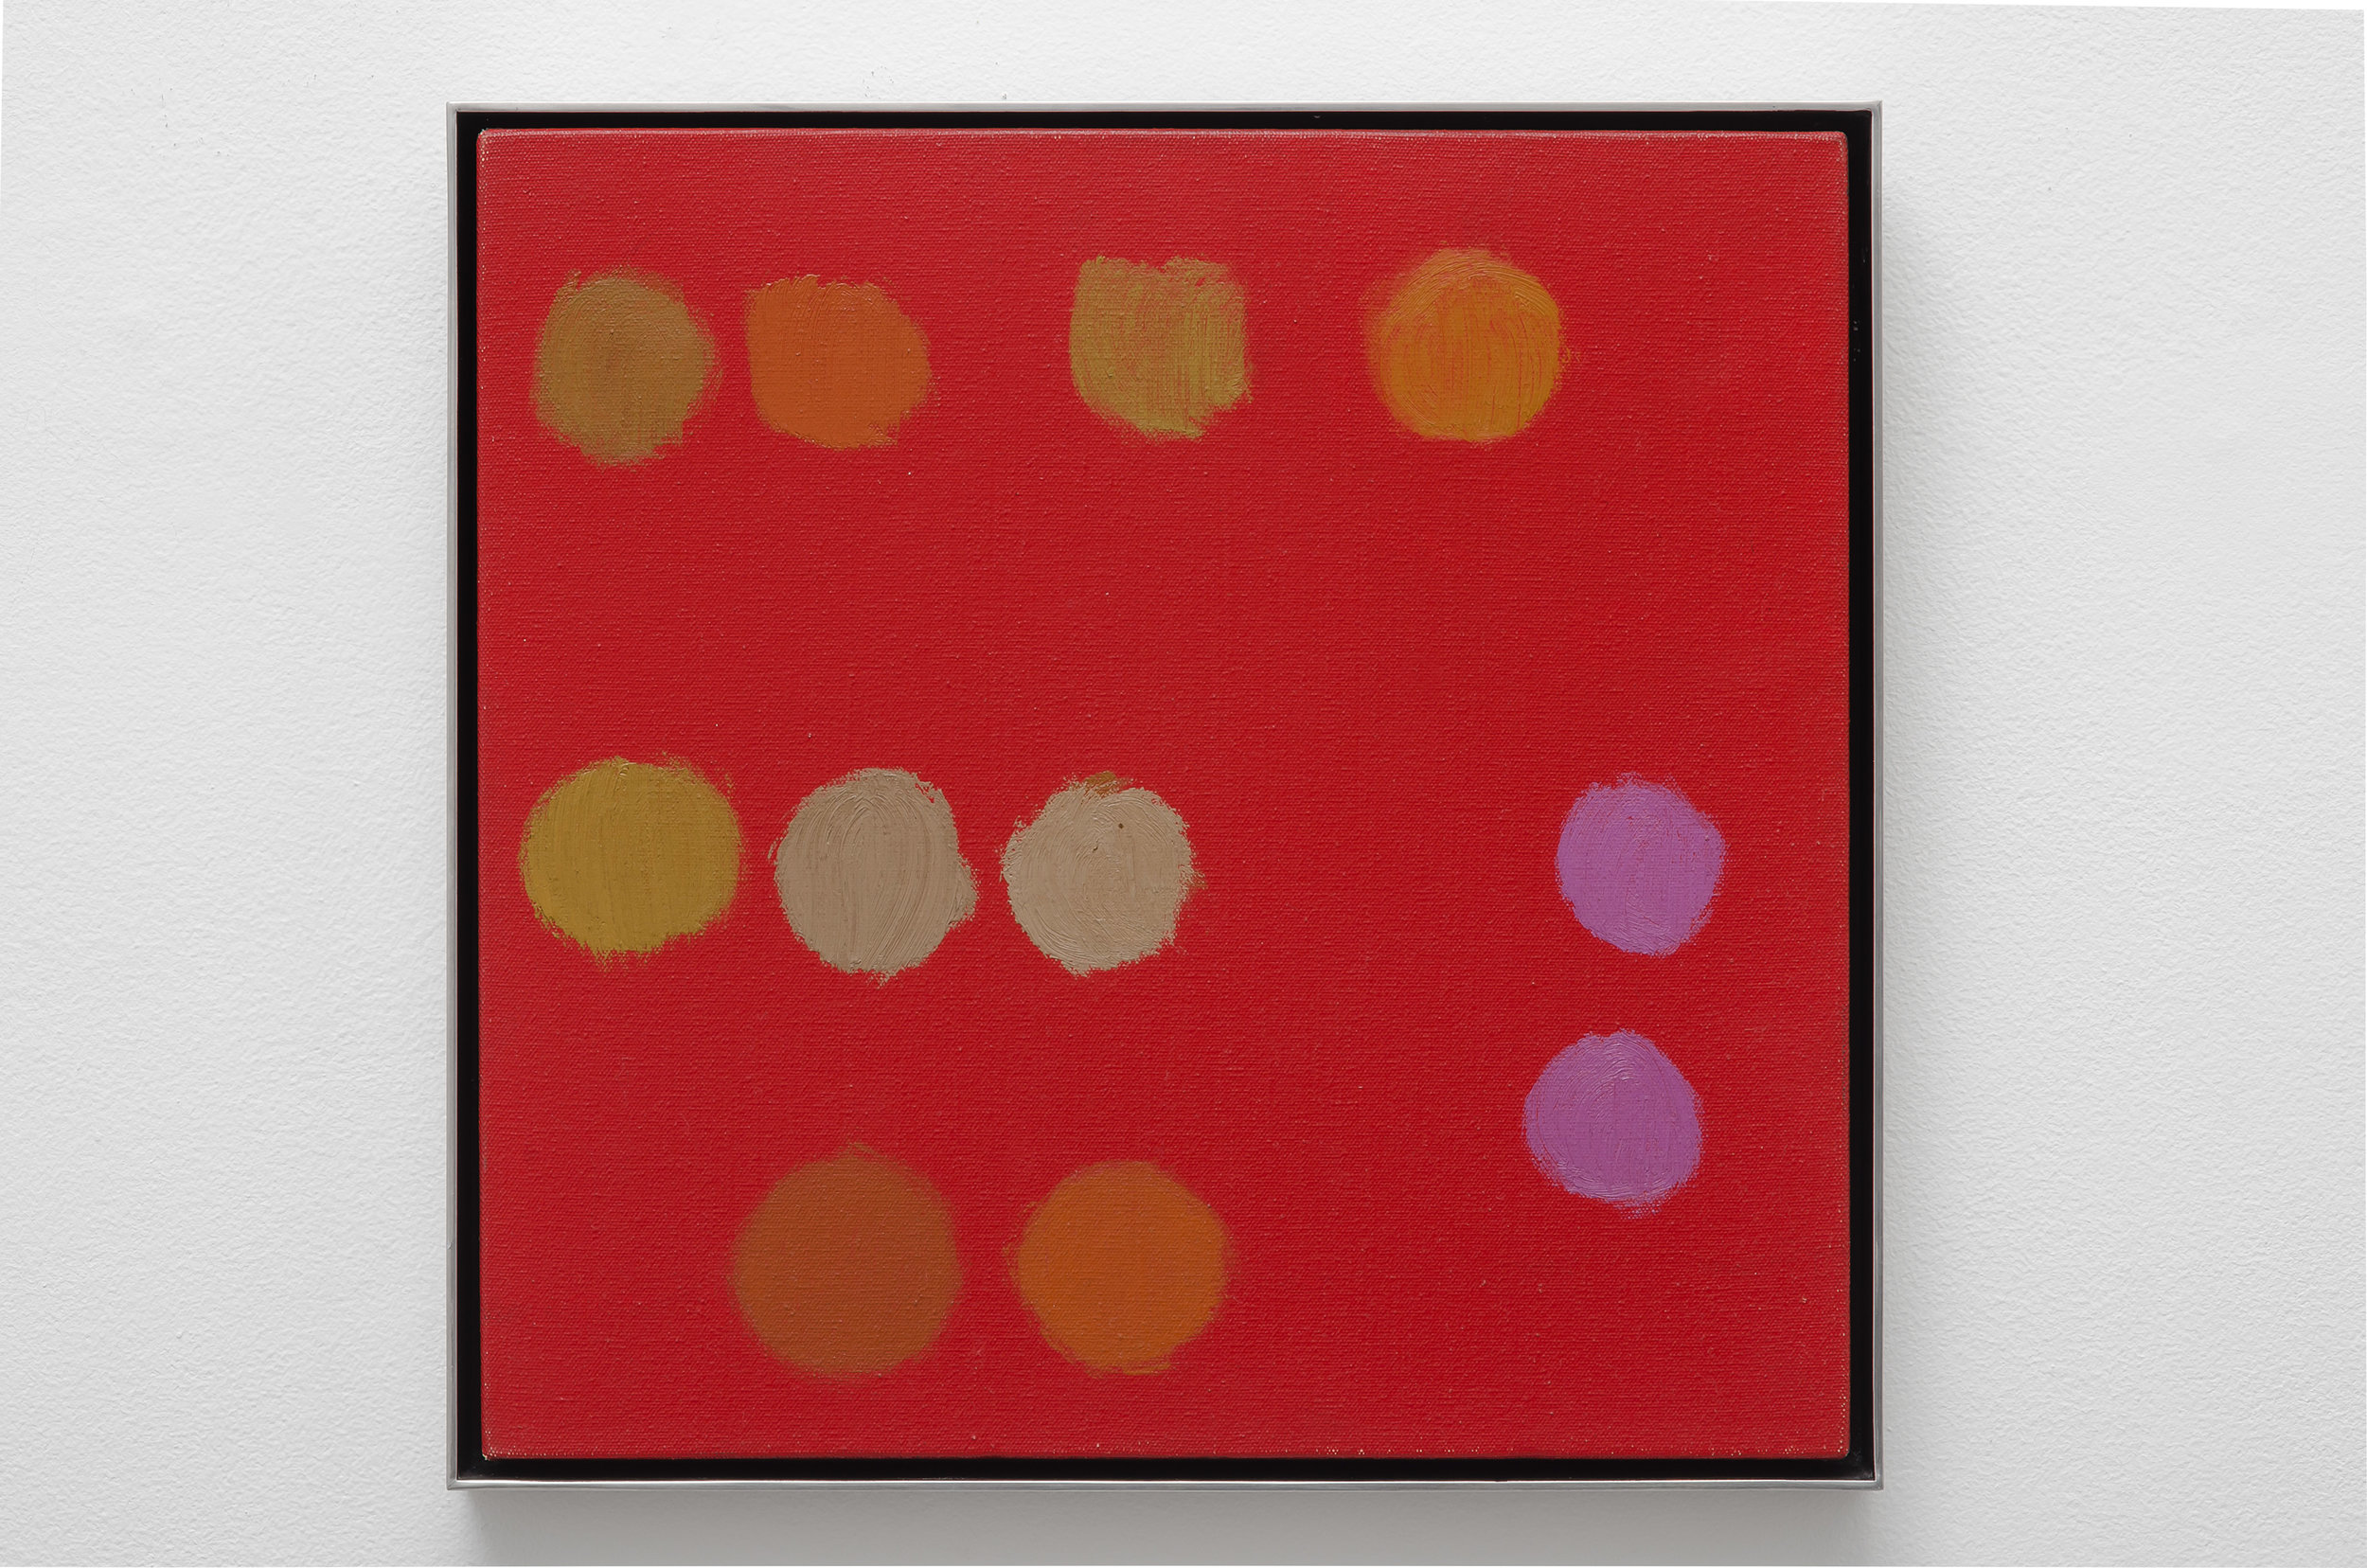 Untitled, 1969  oil on canvas 15 x 15 inches; 38.1 x 38.1 centimeters